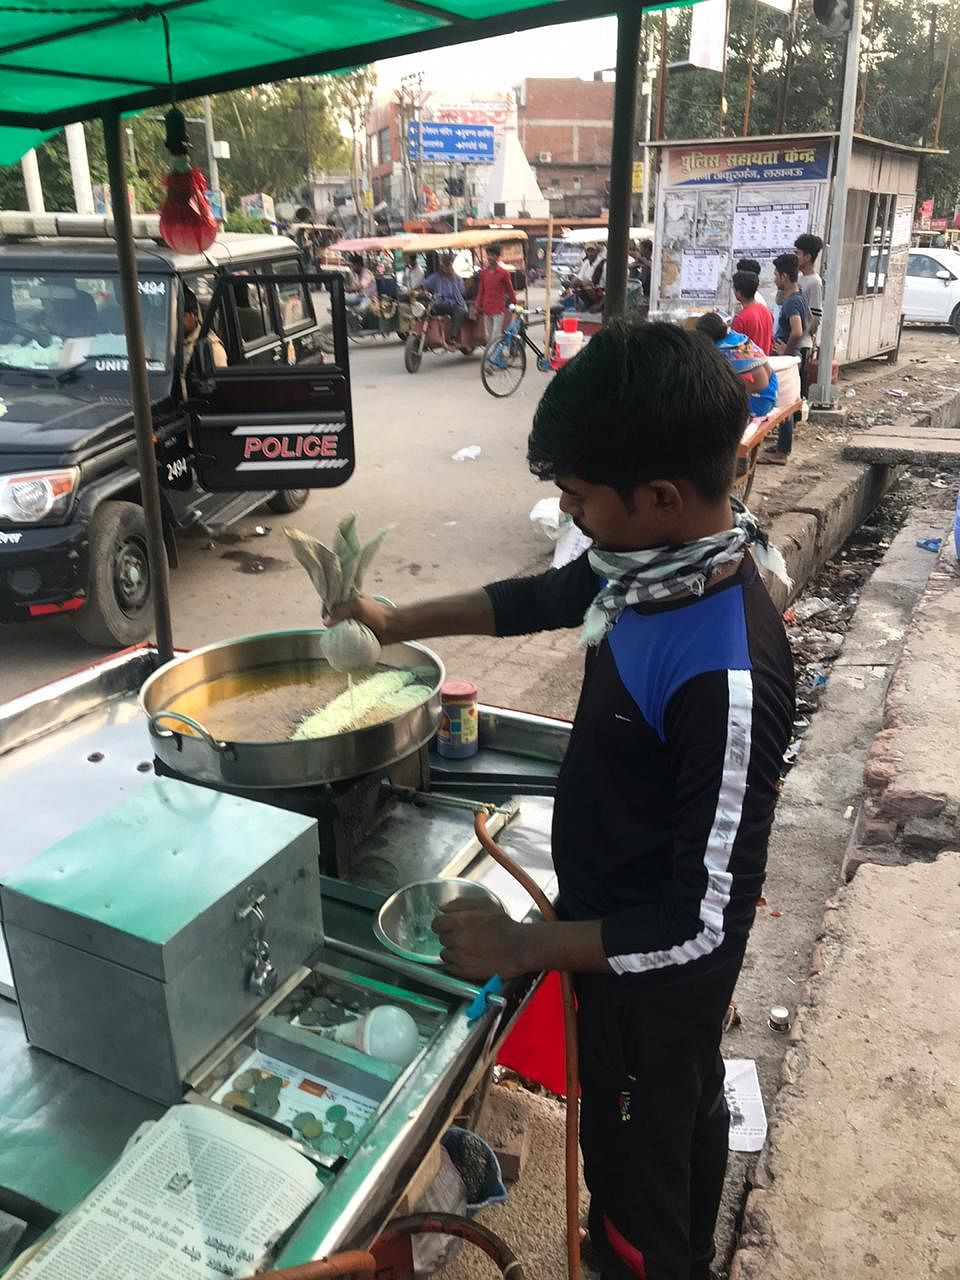 Kamlesh sells sweets on the streets.